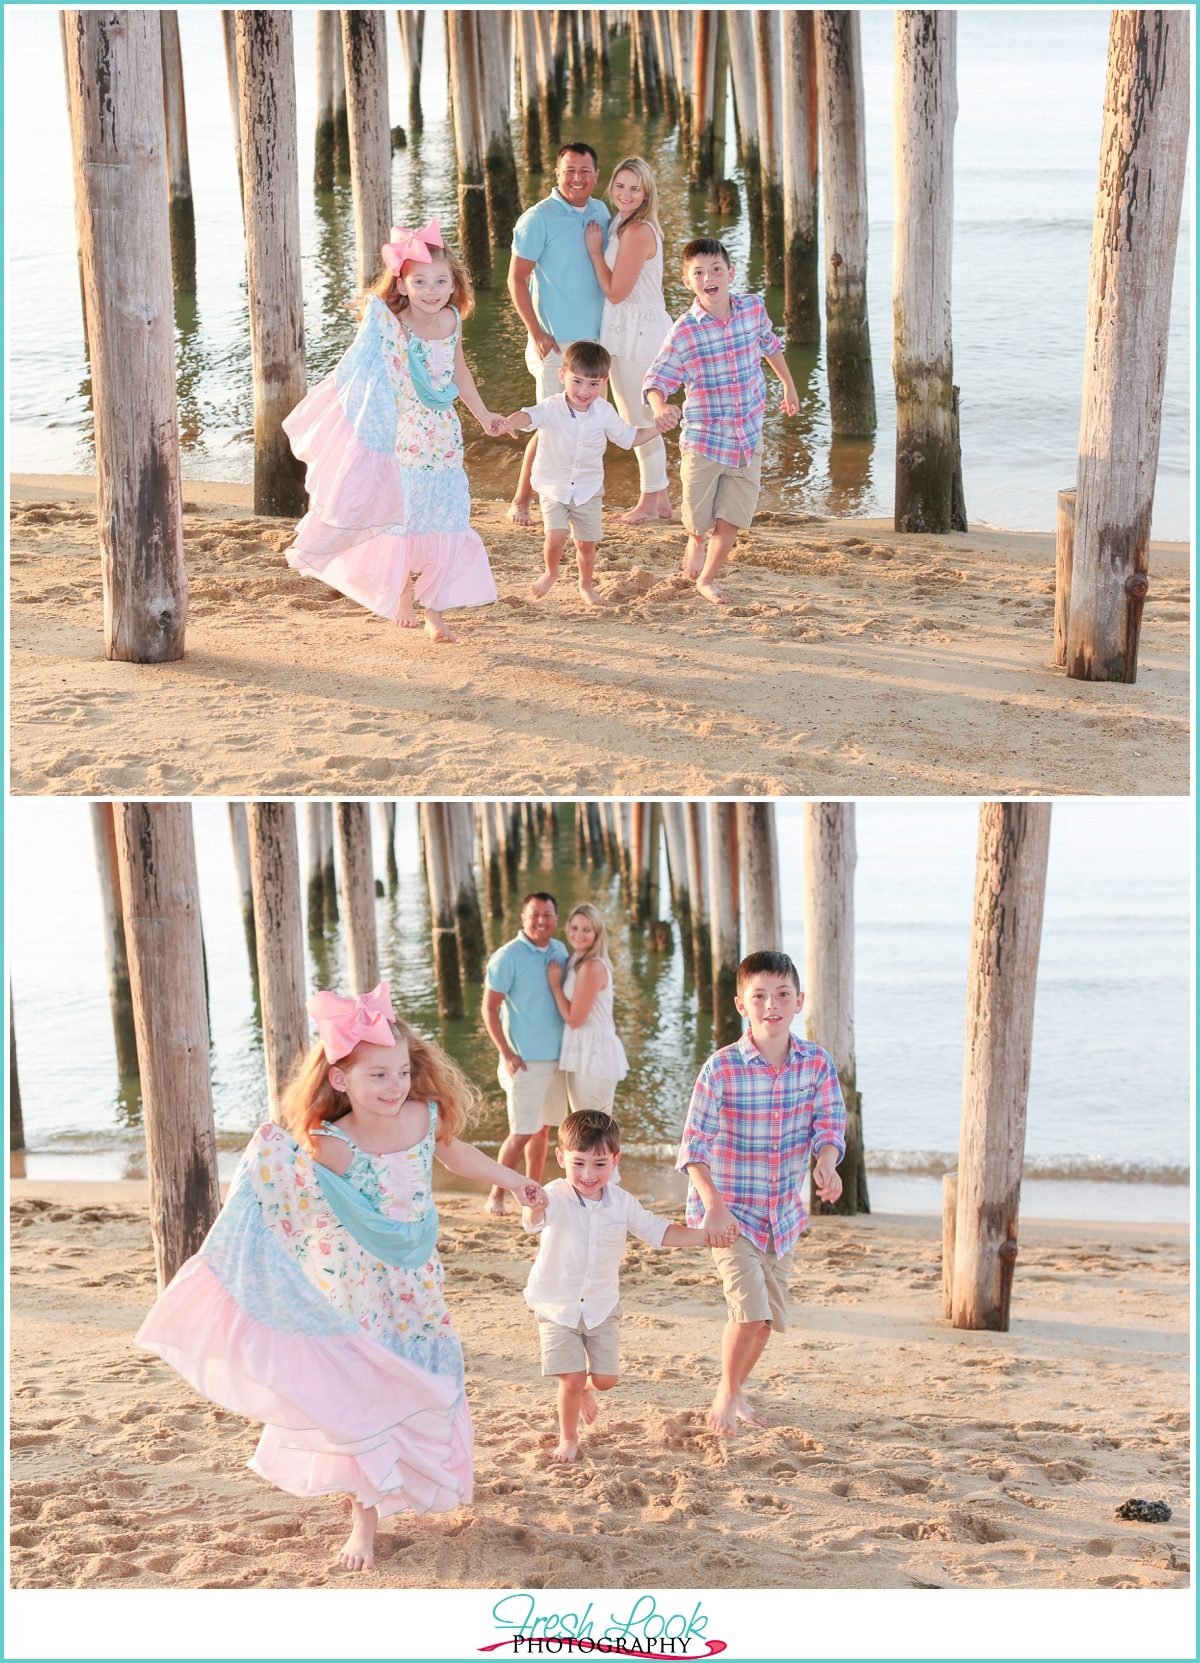 playful family photo shoot